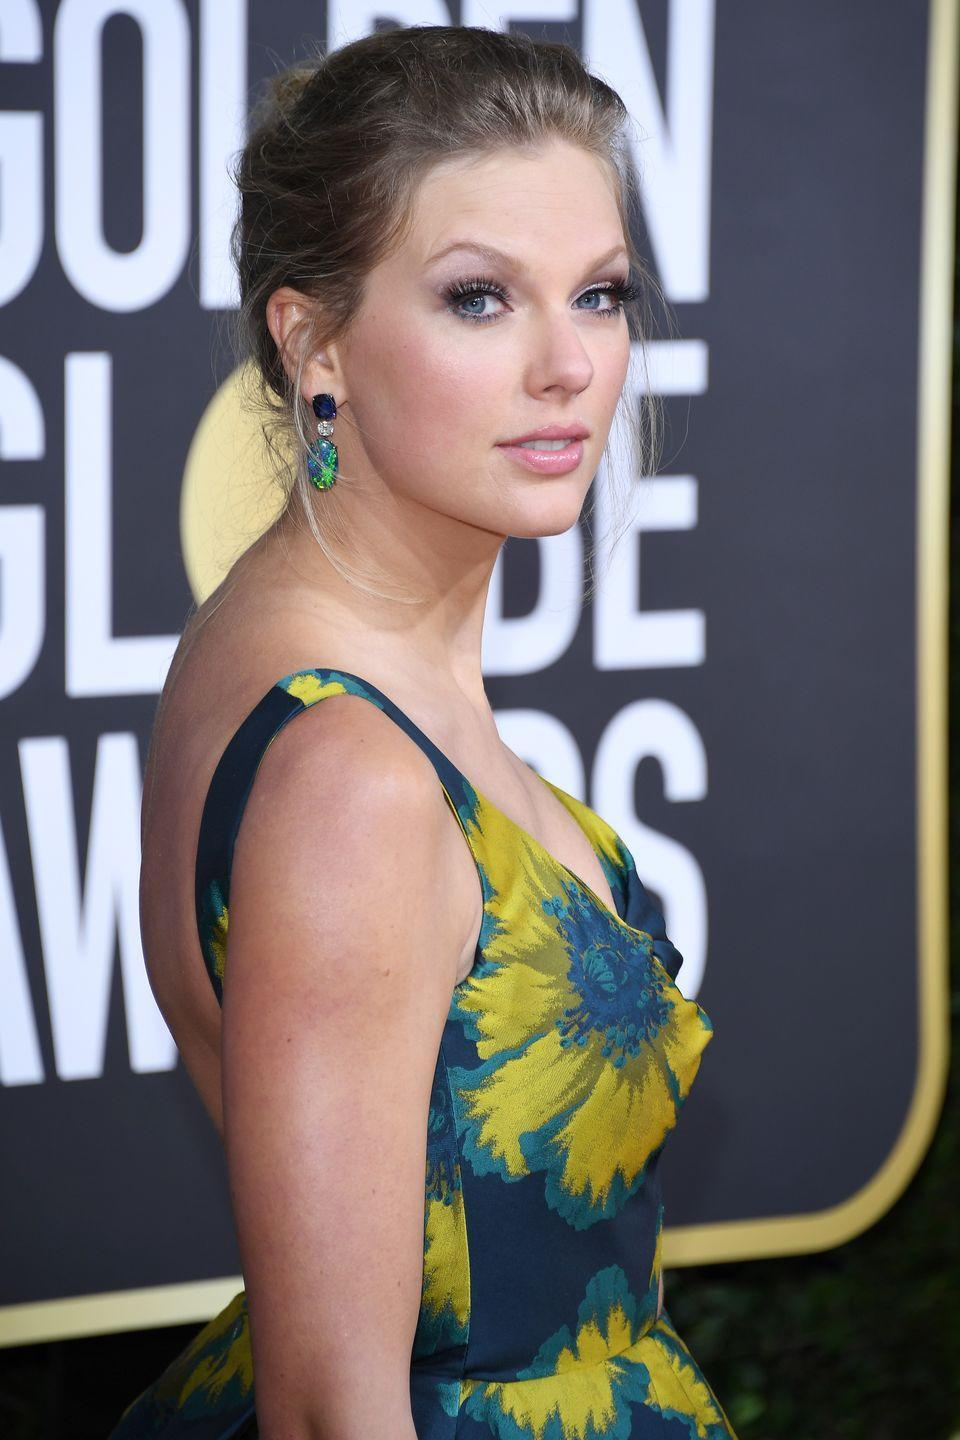 """<p>Taylor successfully transitioned from country chart-topper to pop queen since releasing her first single in 2006. """"Tim McGraw"""" is Swift in all of her guitar-plucking glory, singing about an ex (because, of course she is). </p><p><a class=""""link rapid-noclick-resp"""" href=""""https://www.amazon.com/Tim-McGraw/dp/B006WWUDSO/ref=sr_1_1?tag=syn-yahoo-20&ascsubtag=%5Bartid%7C10063.g.30535280%5Bsrc%7Cyahoo-us"""" rel=""""nofollow noopener"""" target=""""_blank"""" data-ylk=""""slk:BUY NOW"""">BUY NOW</a></p>"""